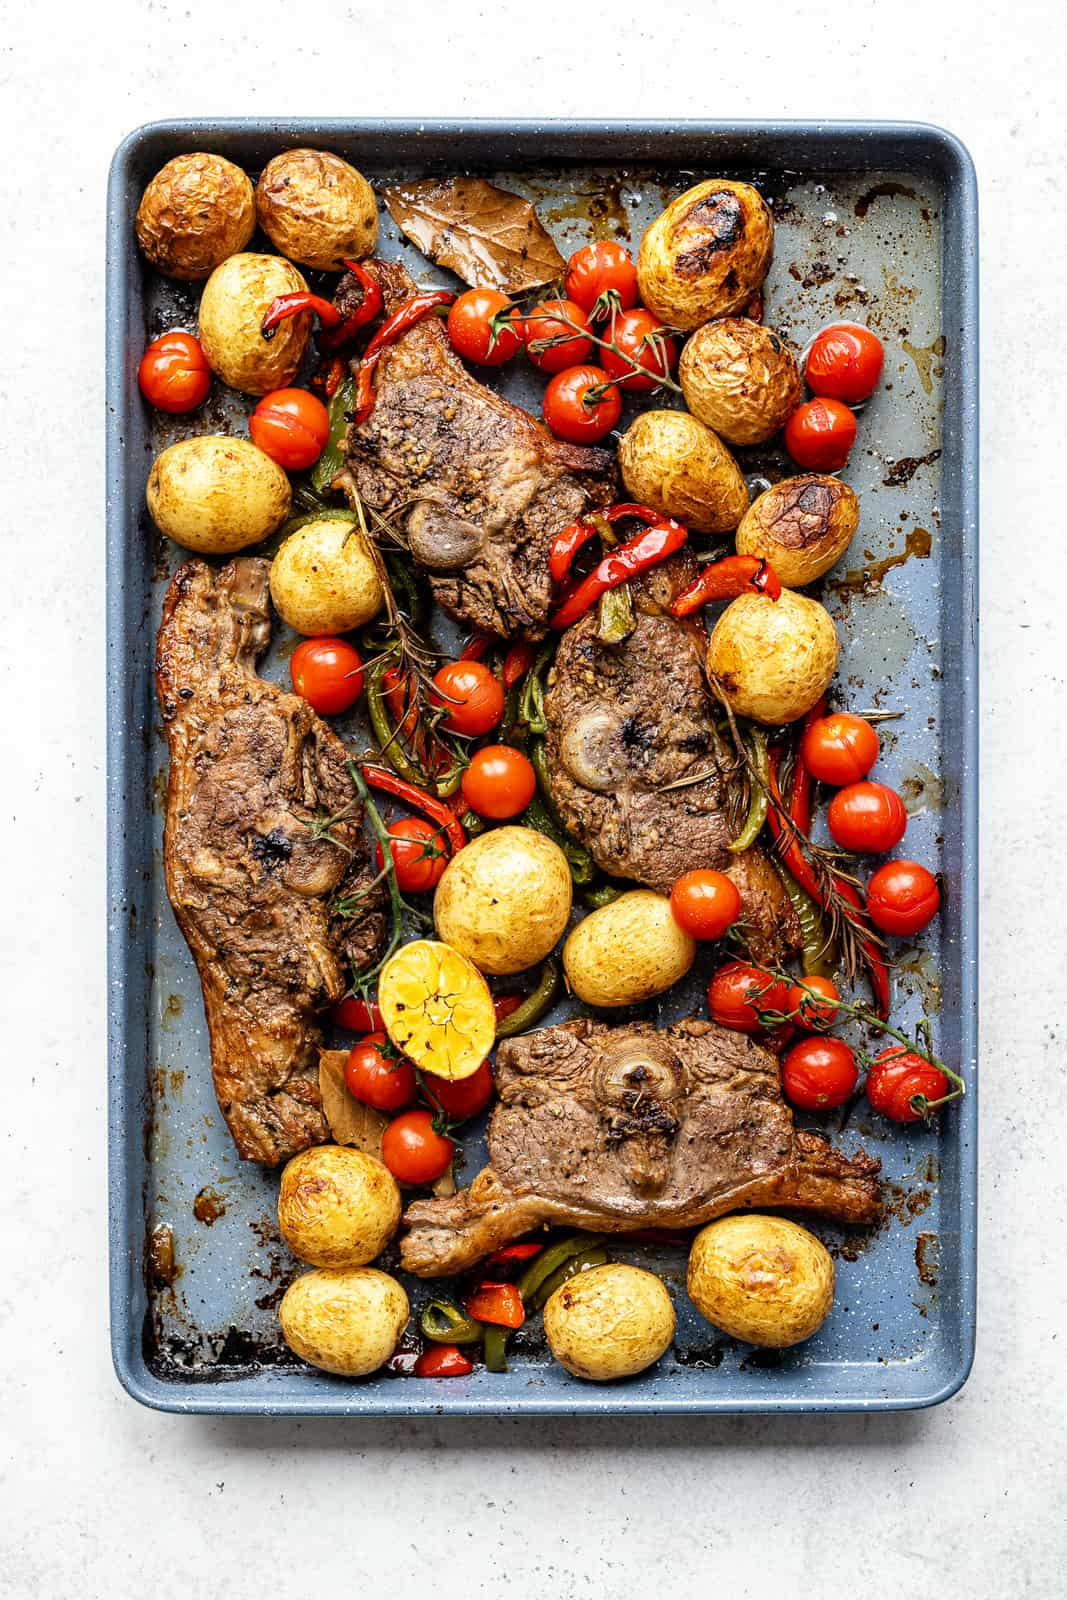 Oven Baked Lamb Chops with potatoes, peppers and tomatoes